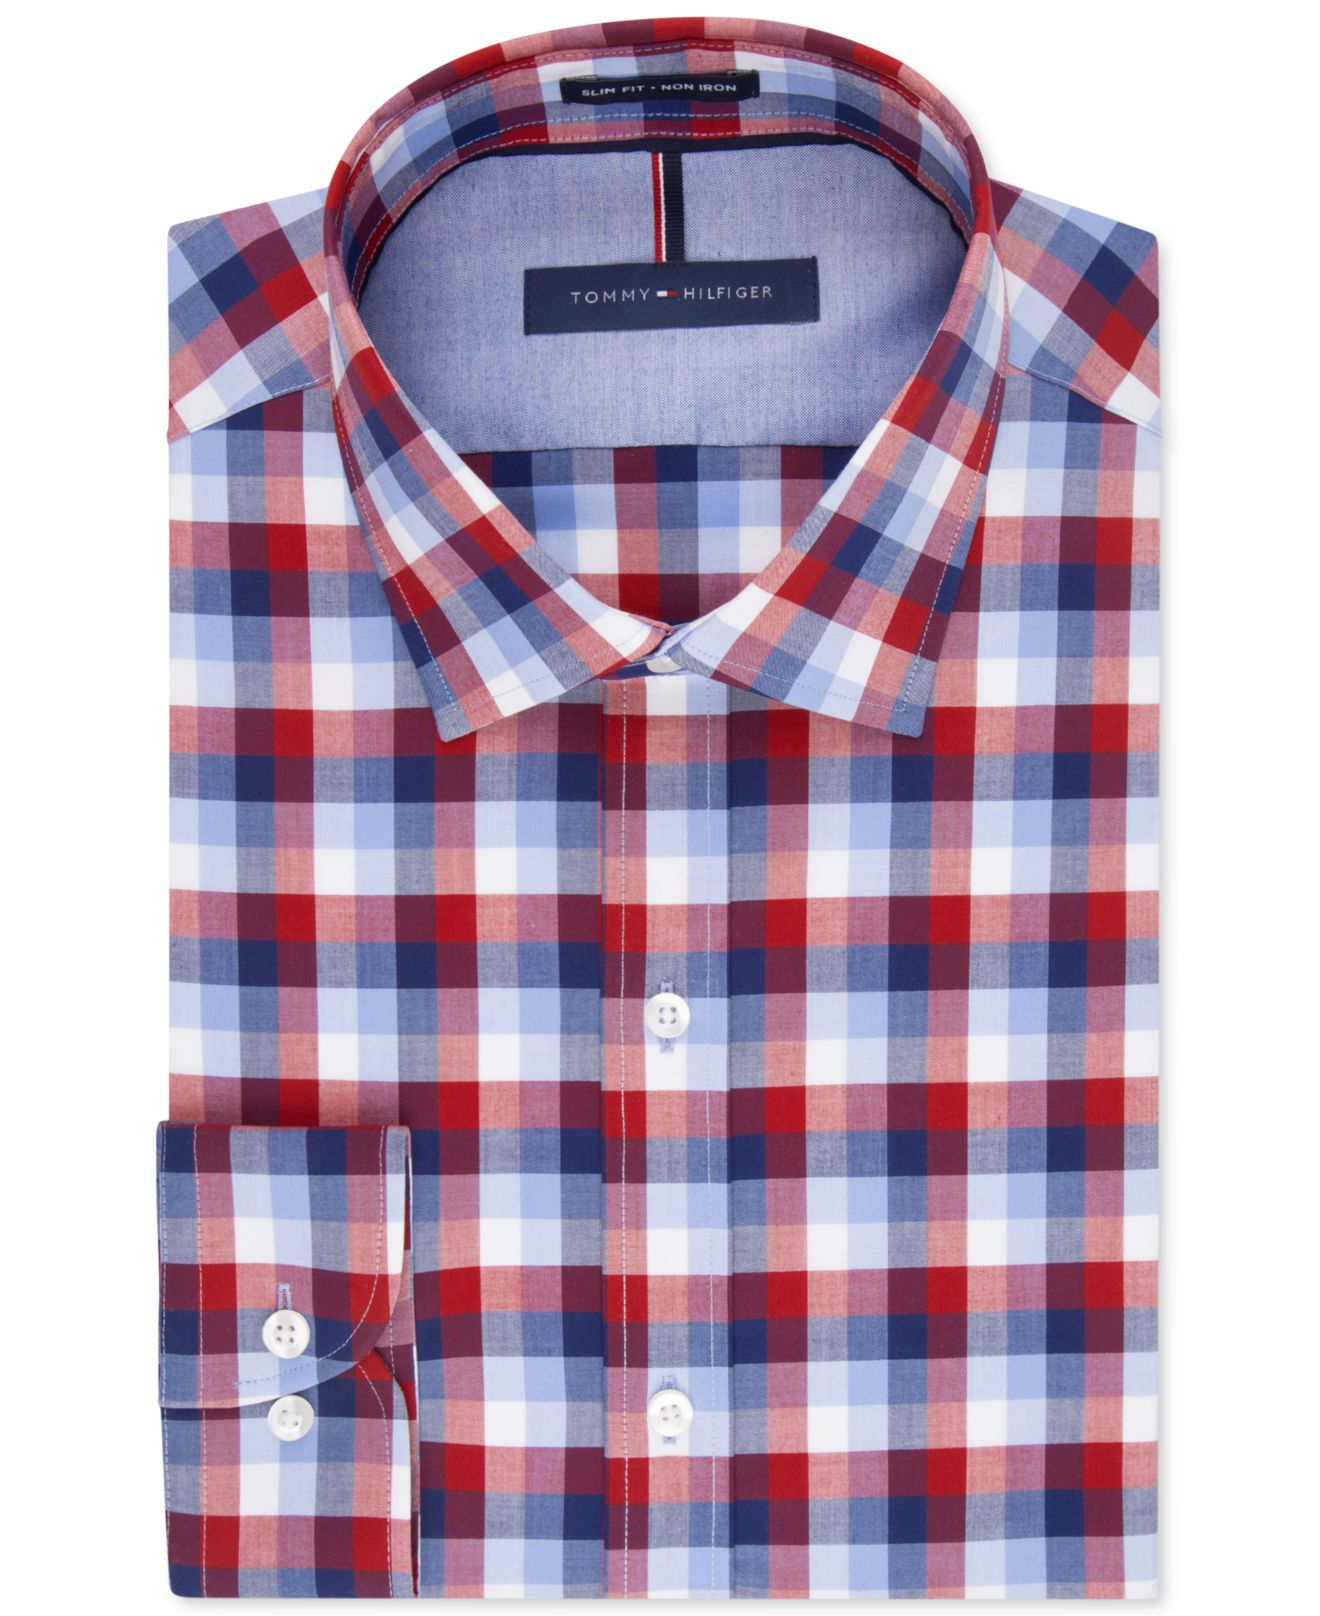 a4dc20d20 Tommy Hilfiger Slim-fit Non-iron Soft Wash Red And Blue Multi Check ...